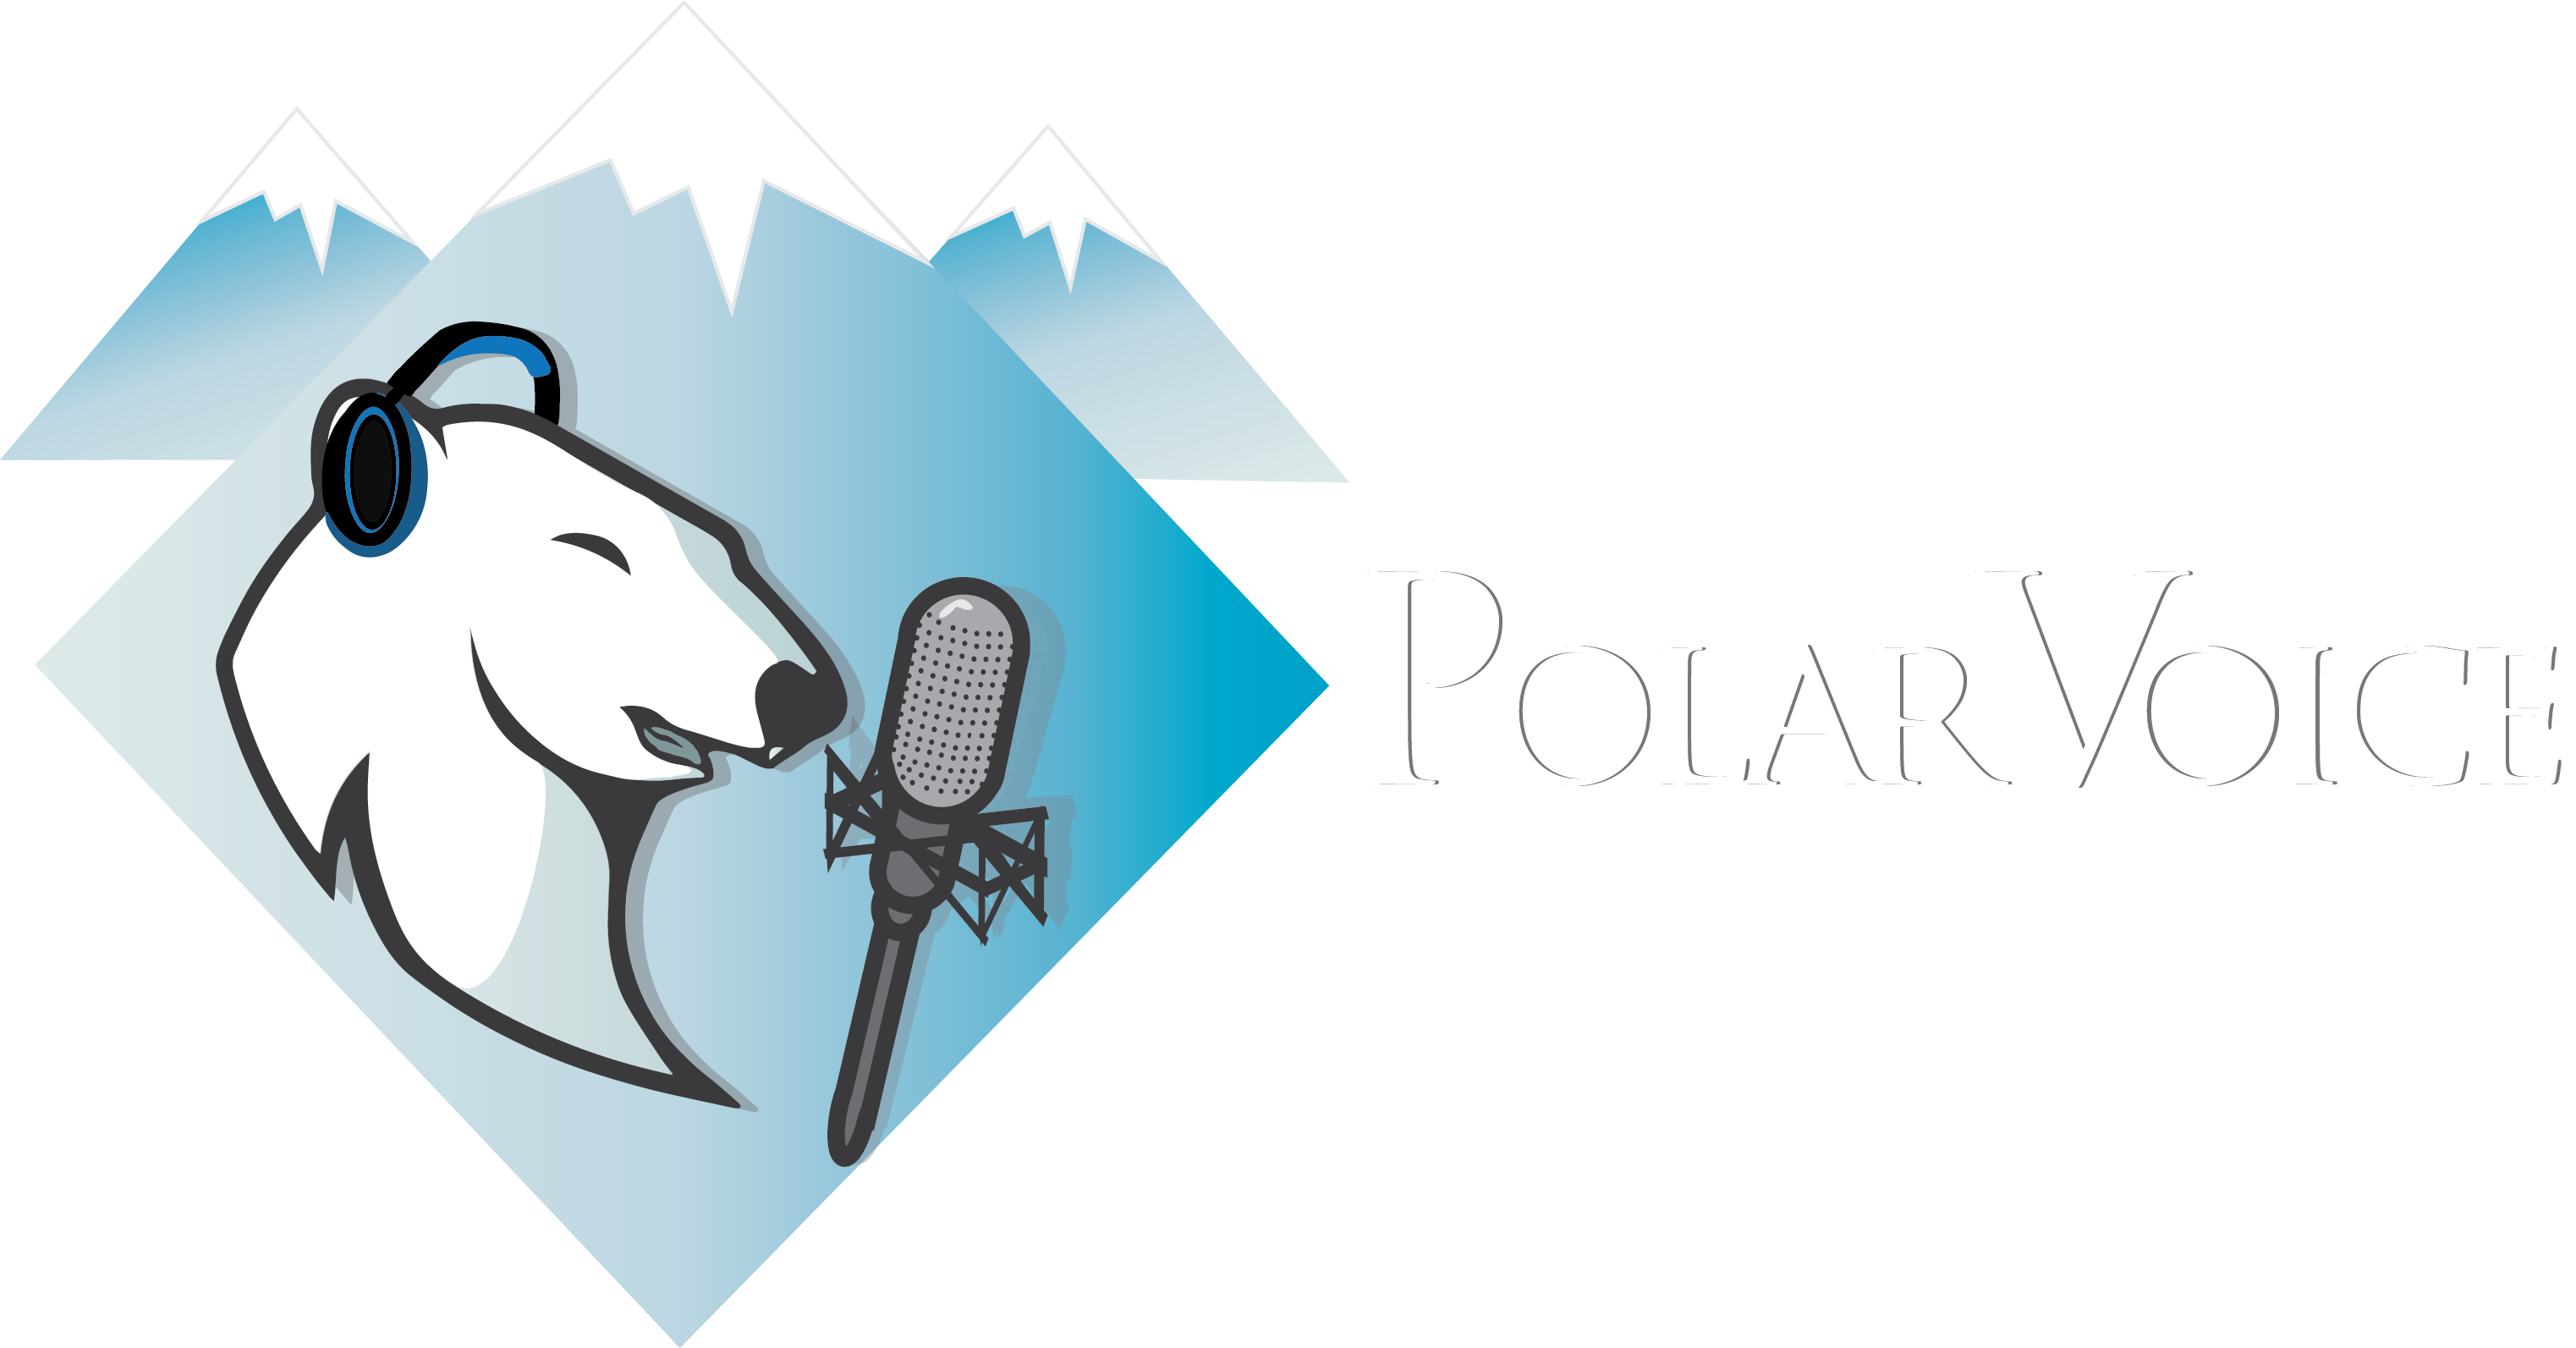 PolarVoice